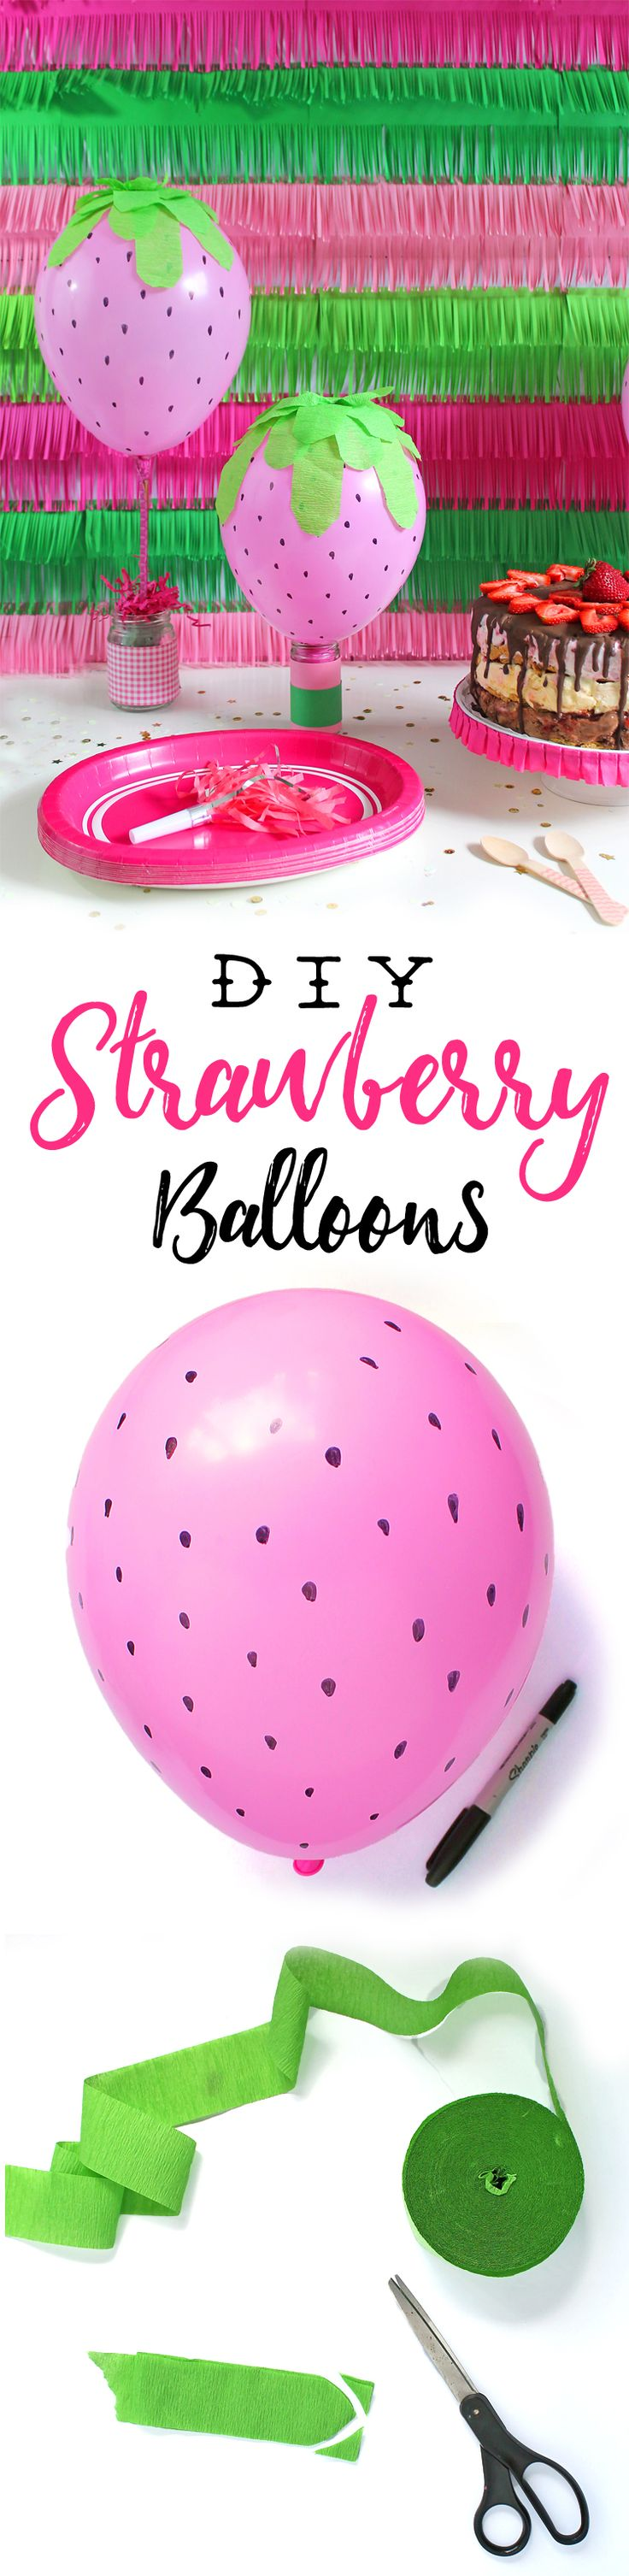 DIY Strawberry Balloon Party Decorations